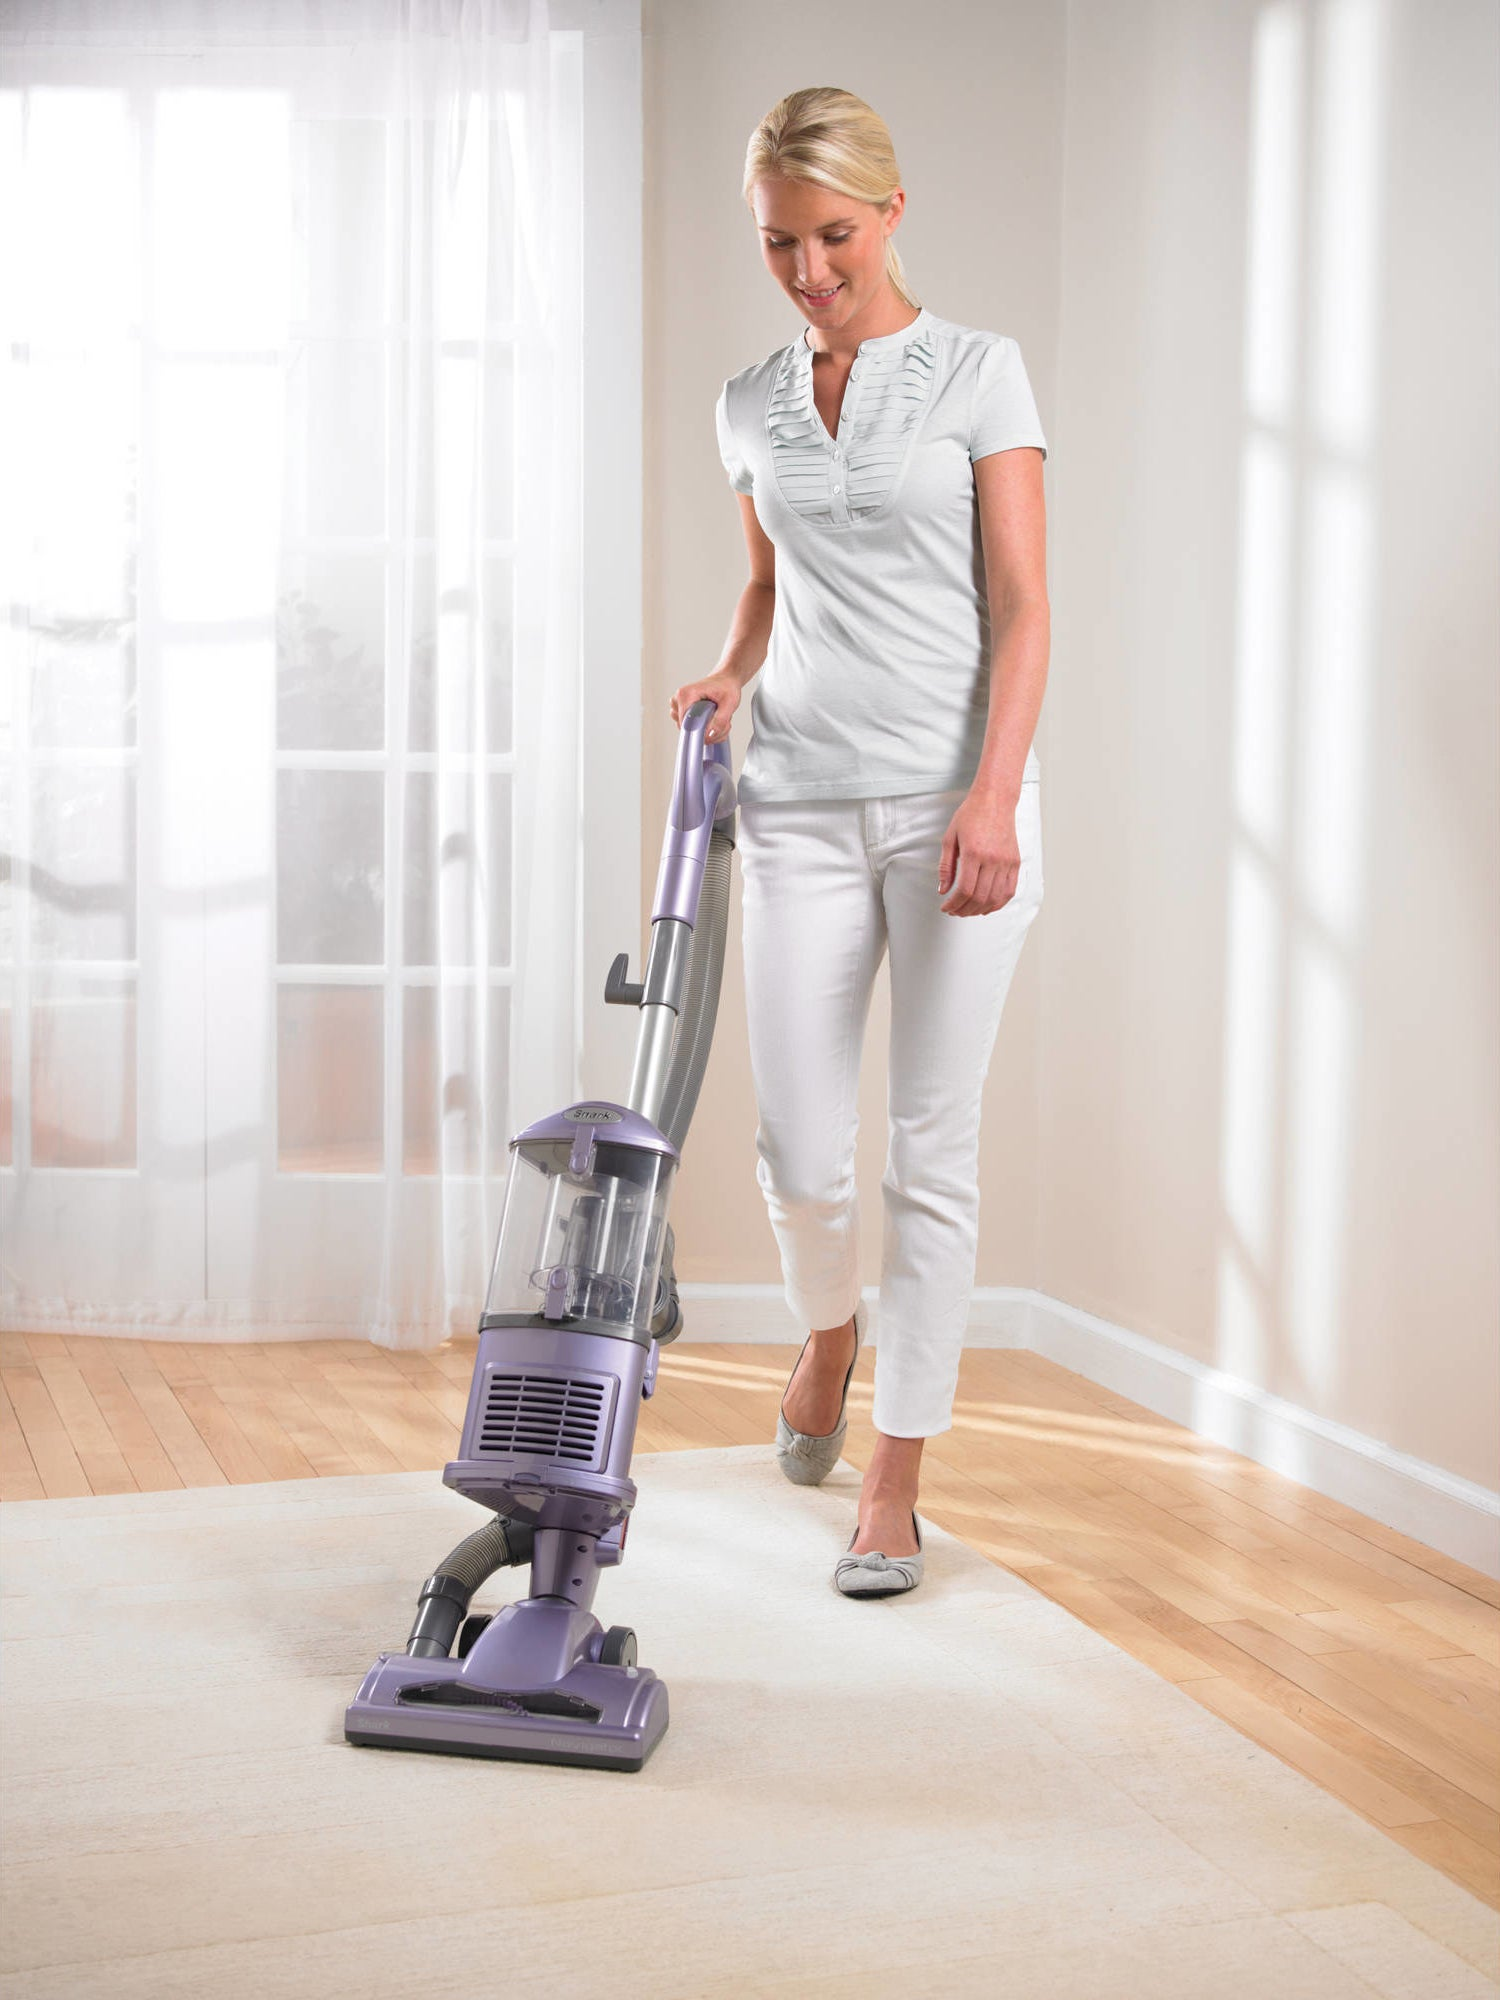 A model with the purple vacuum